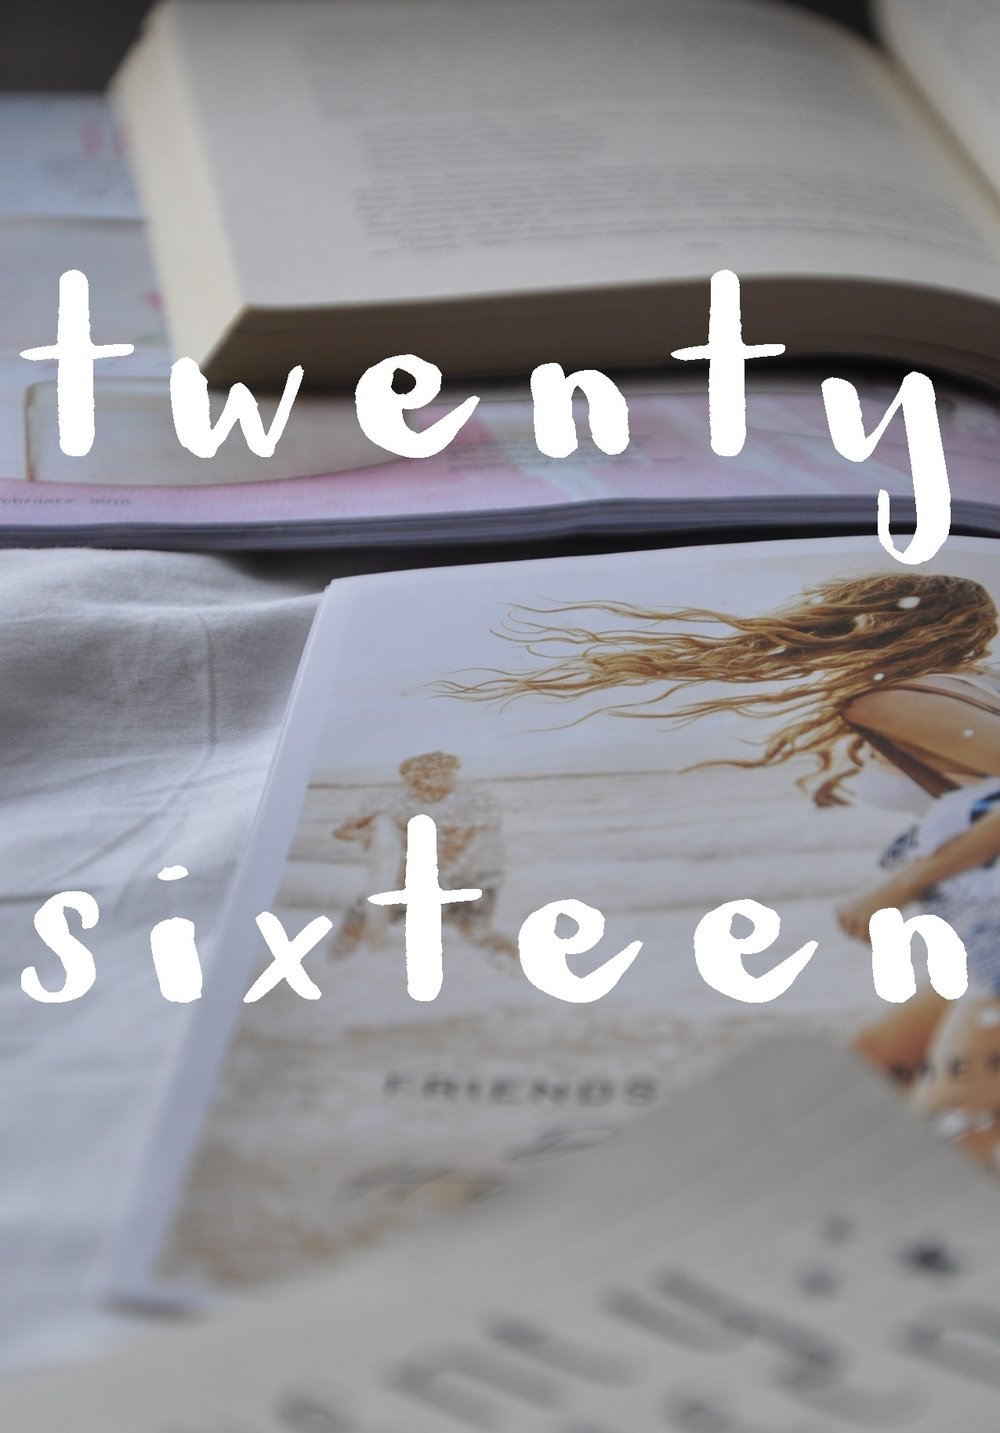 Twenty Sixteen Resolutions – Happy New Year & Welcome 2016! My dreams, ambitions and goals for the New Year. A fresh start, new beginning and chapter. Read, write, inspire, photography. A Lovely Space   alovelyspace.com